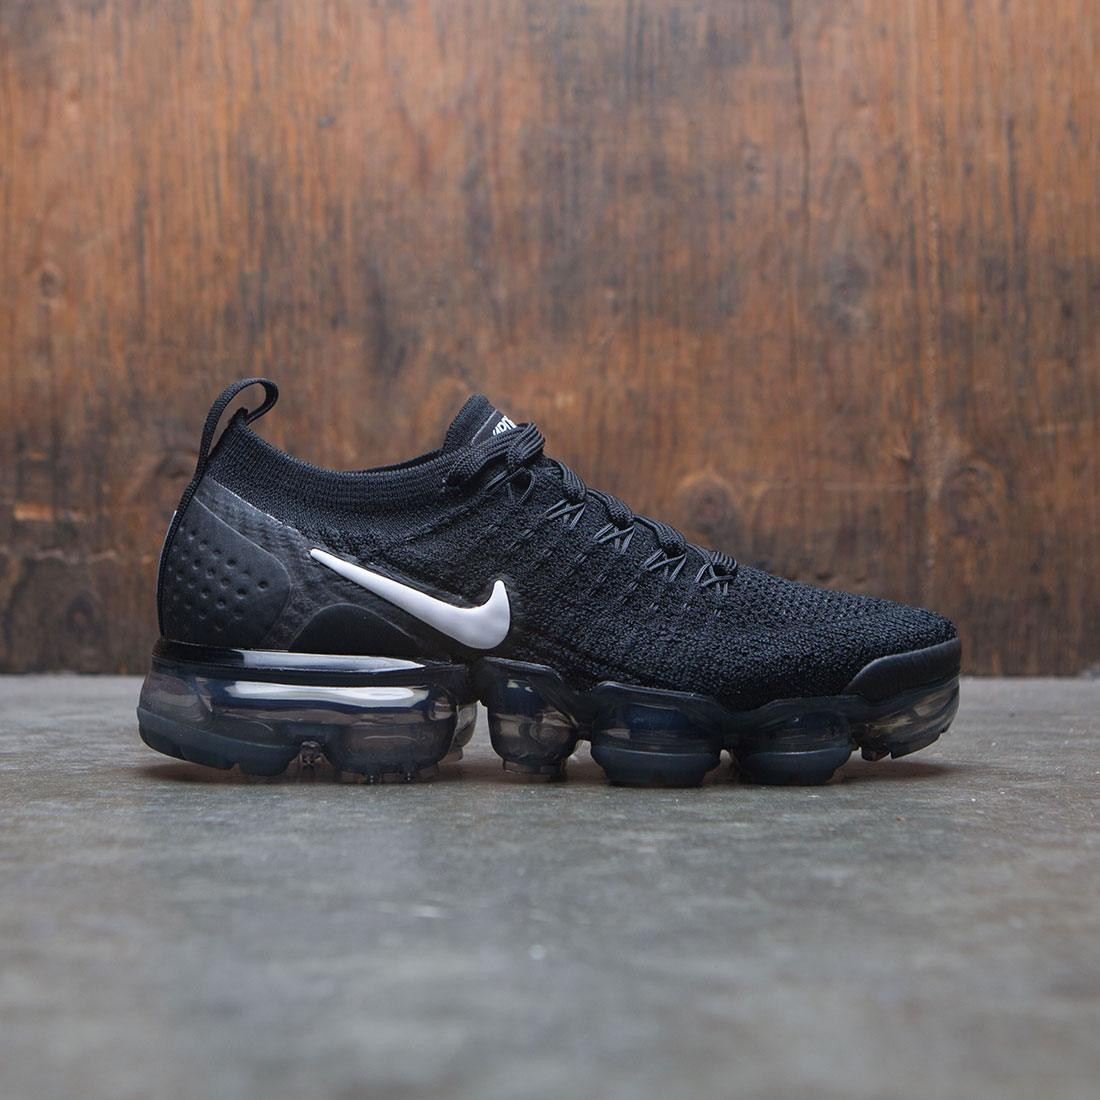 6010a5ee1e7 nike women air vapormax flyknit 2 black white dark grey metallic silver